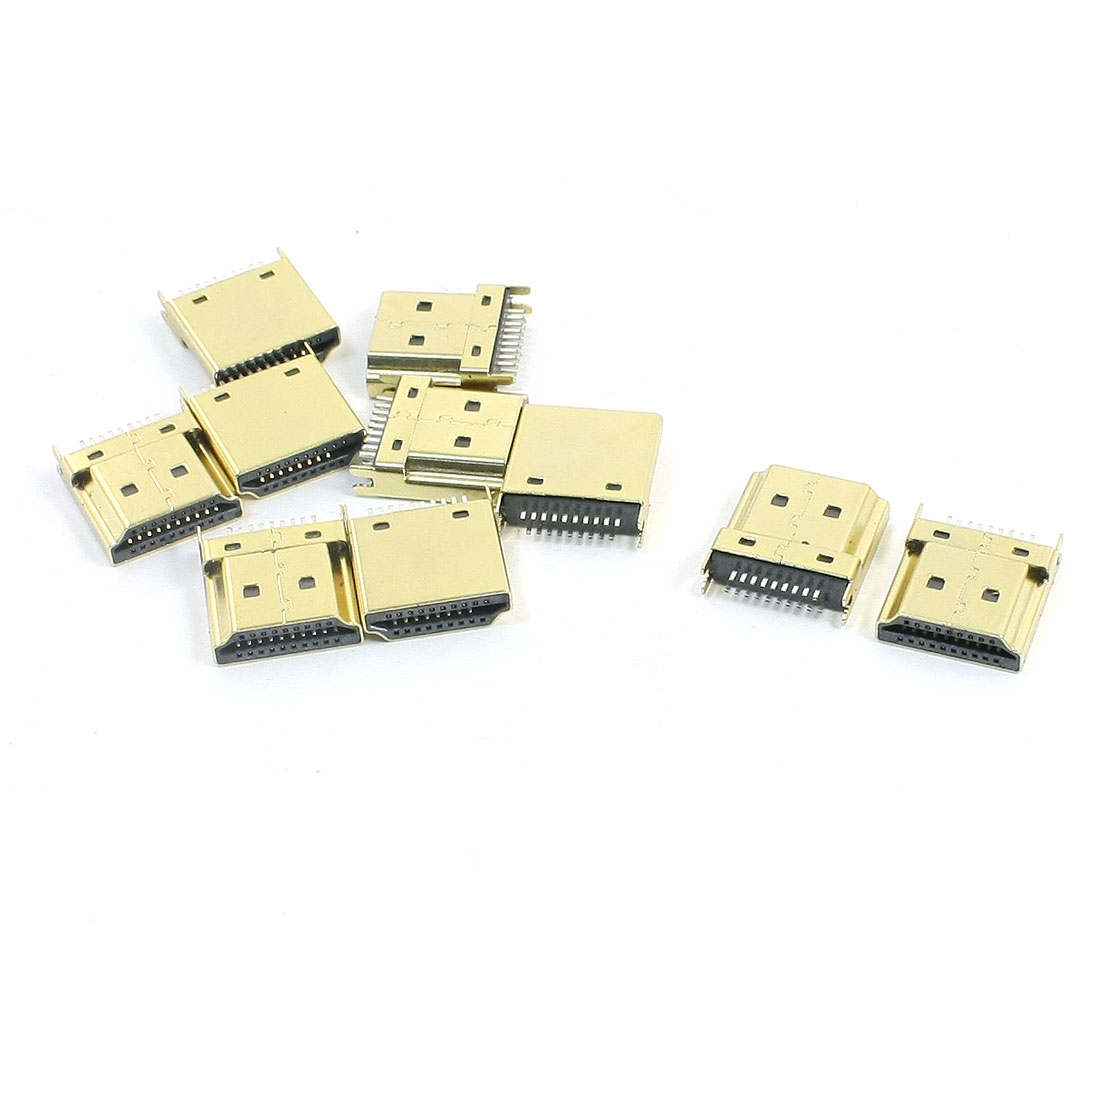 10Pcs Gold Tone 1.2mm Pitch Mini HDMI Female 19 Pins SMT DIP Connectors